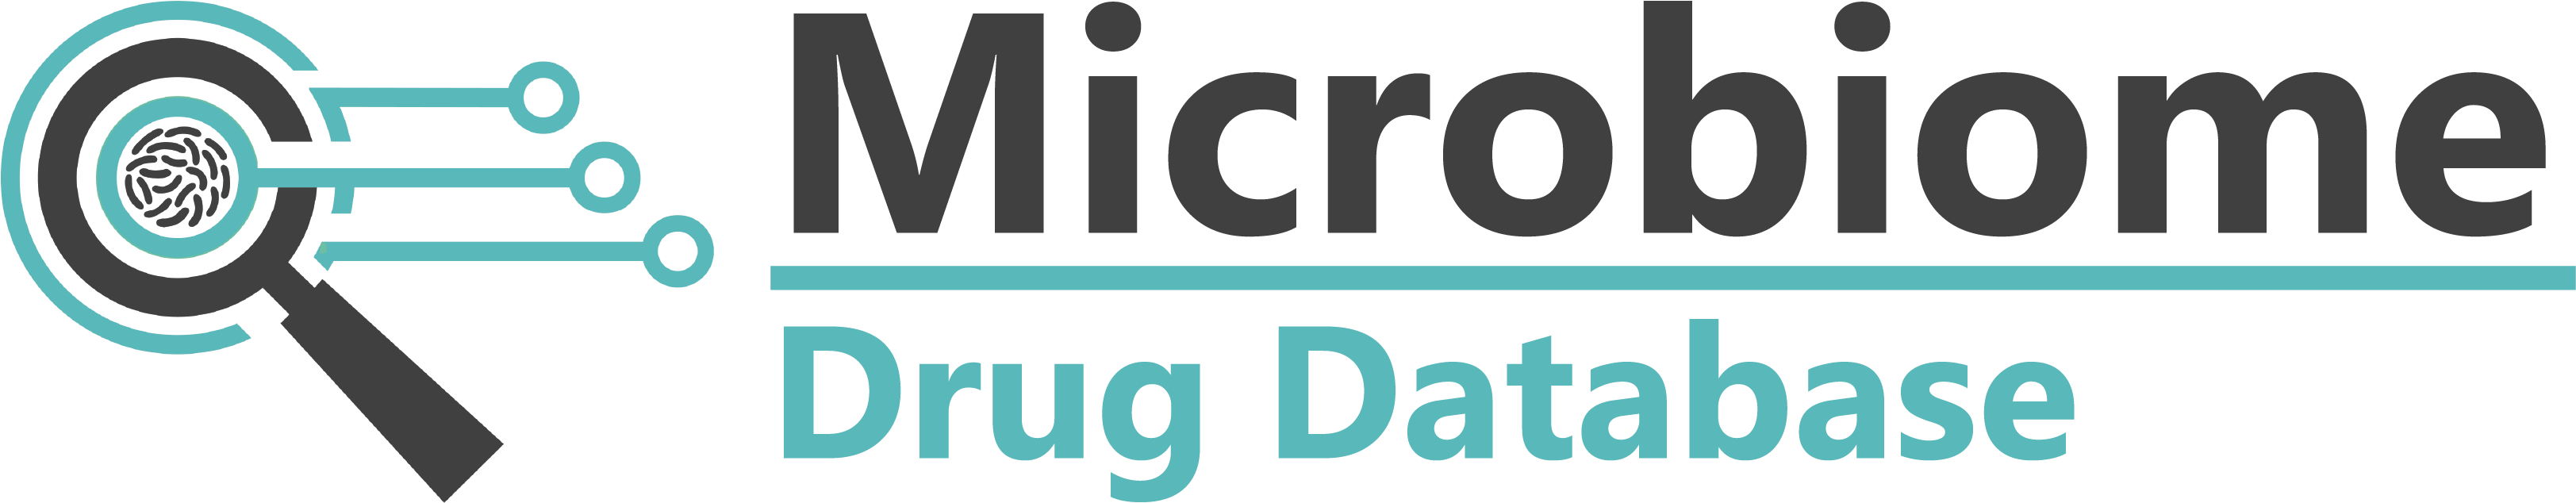 microbiome drug database logo 2